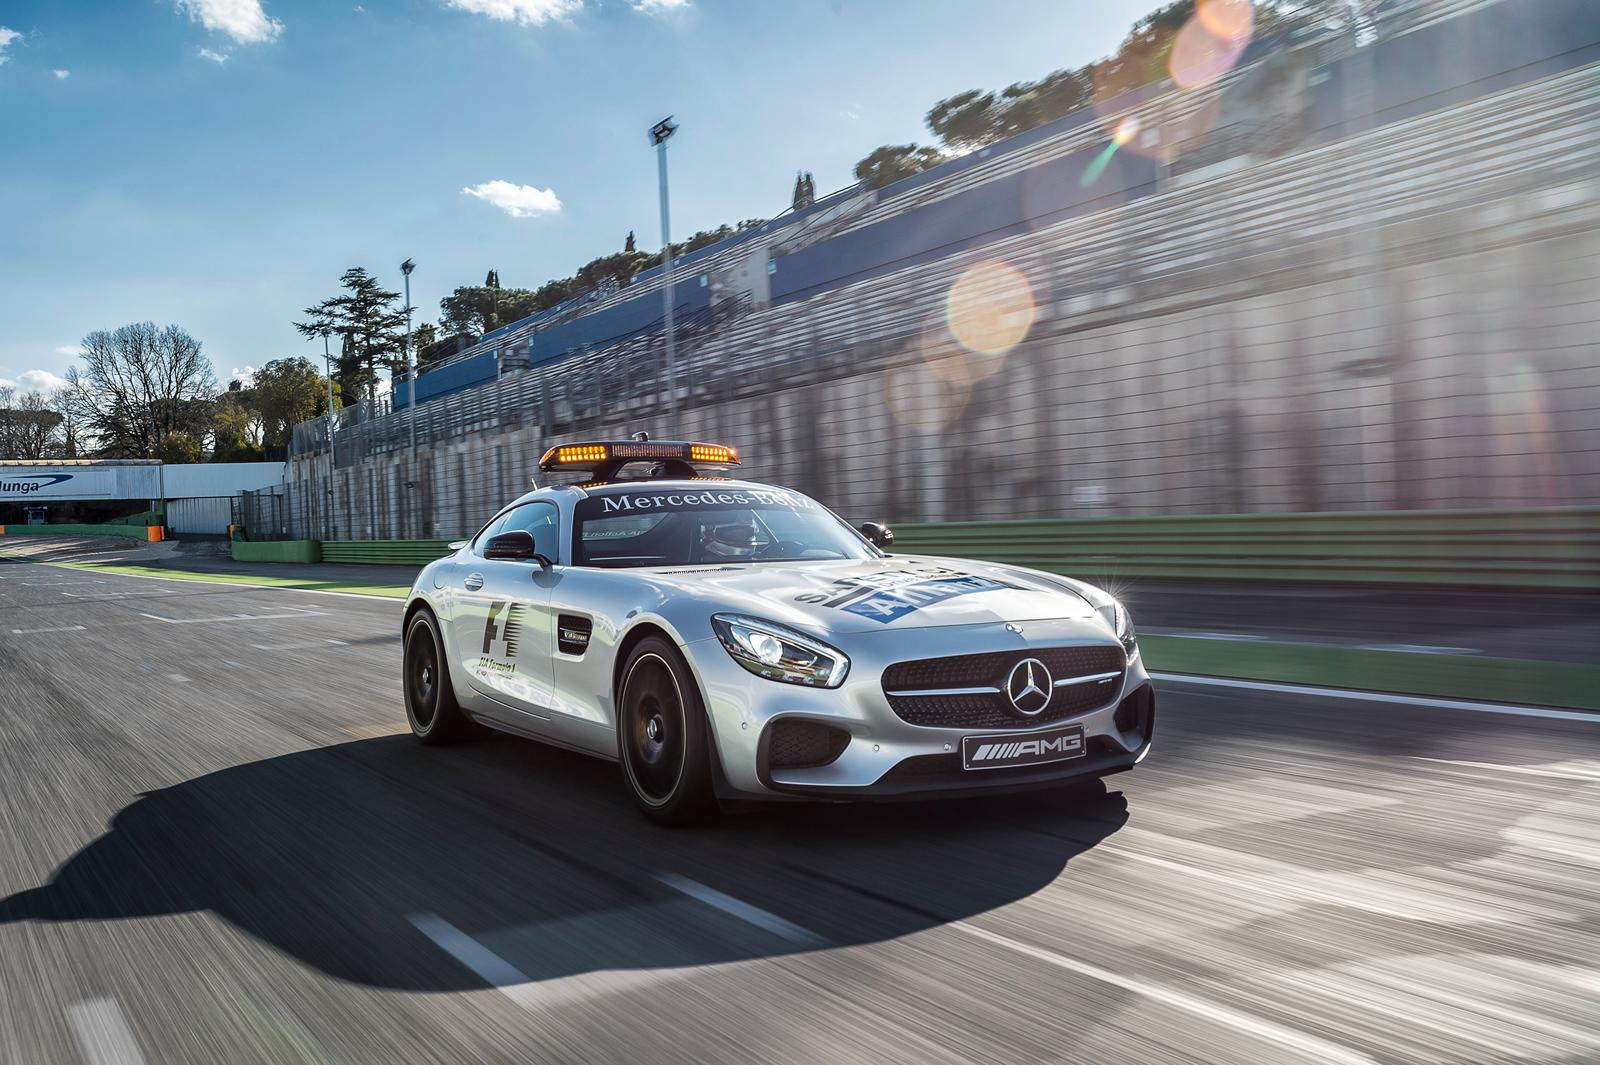 mercedes amg gt s f1 safety car and c63 s medical car revealed gtspirit. Black Bedroom Furniture Sets. Home Design Ideas